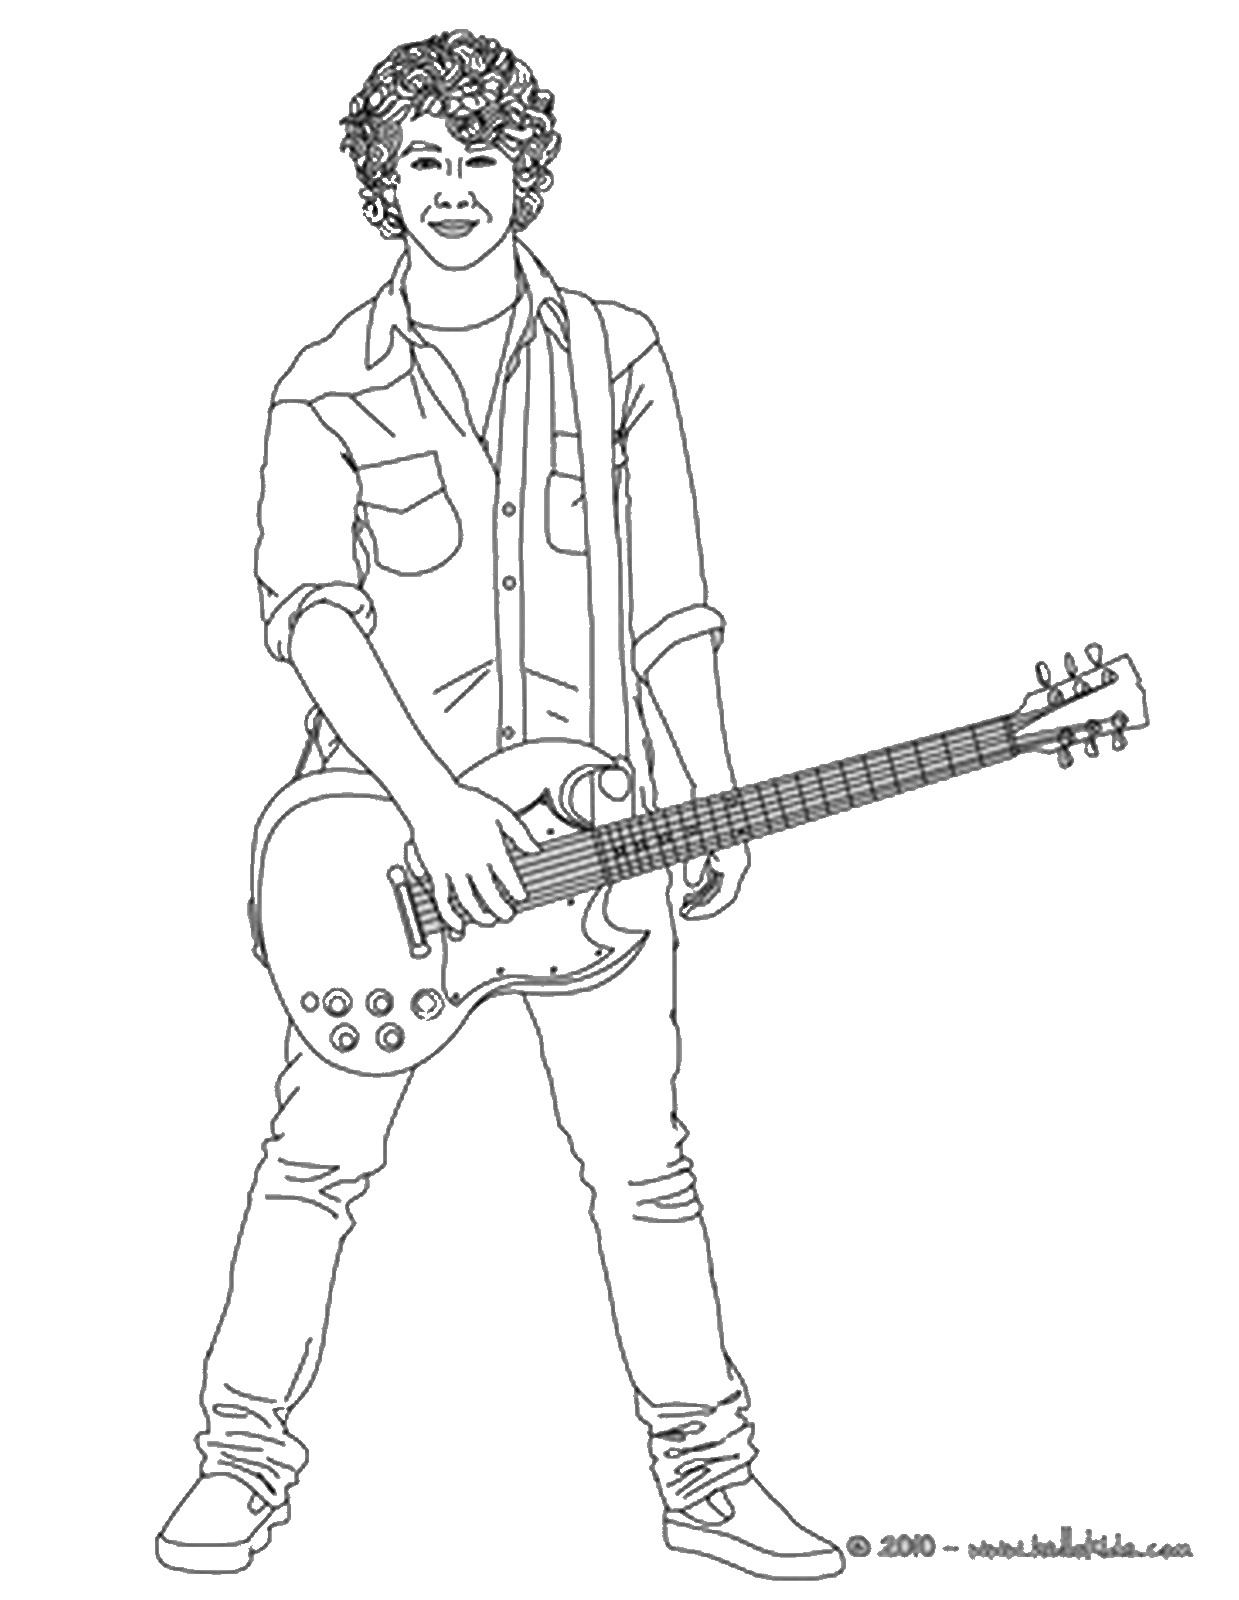 american idol coloring pages - photo#2